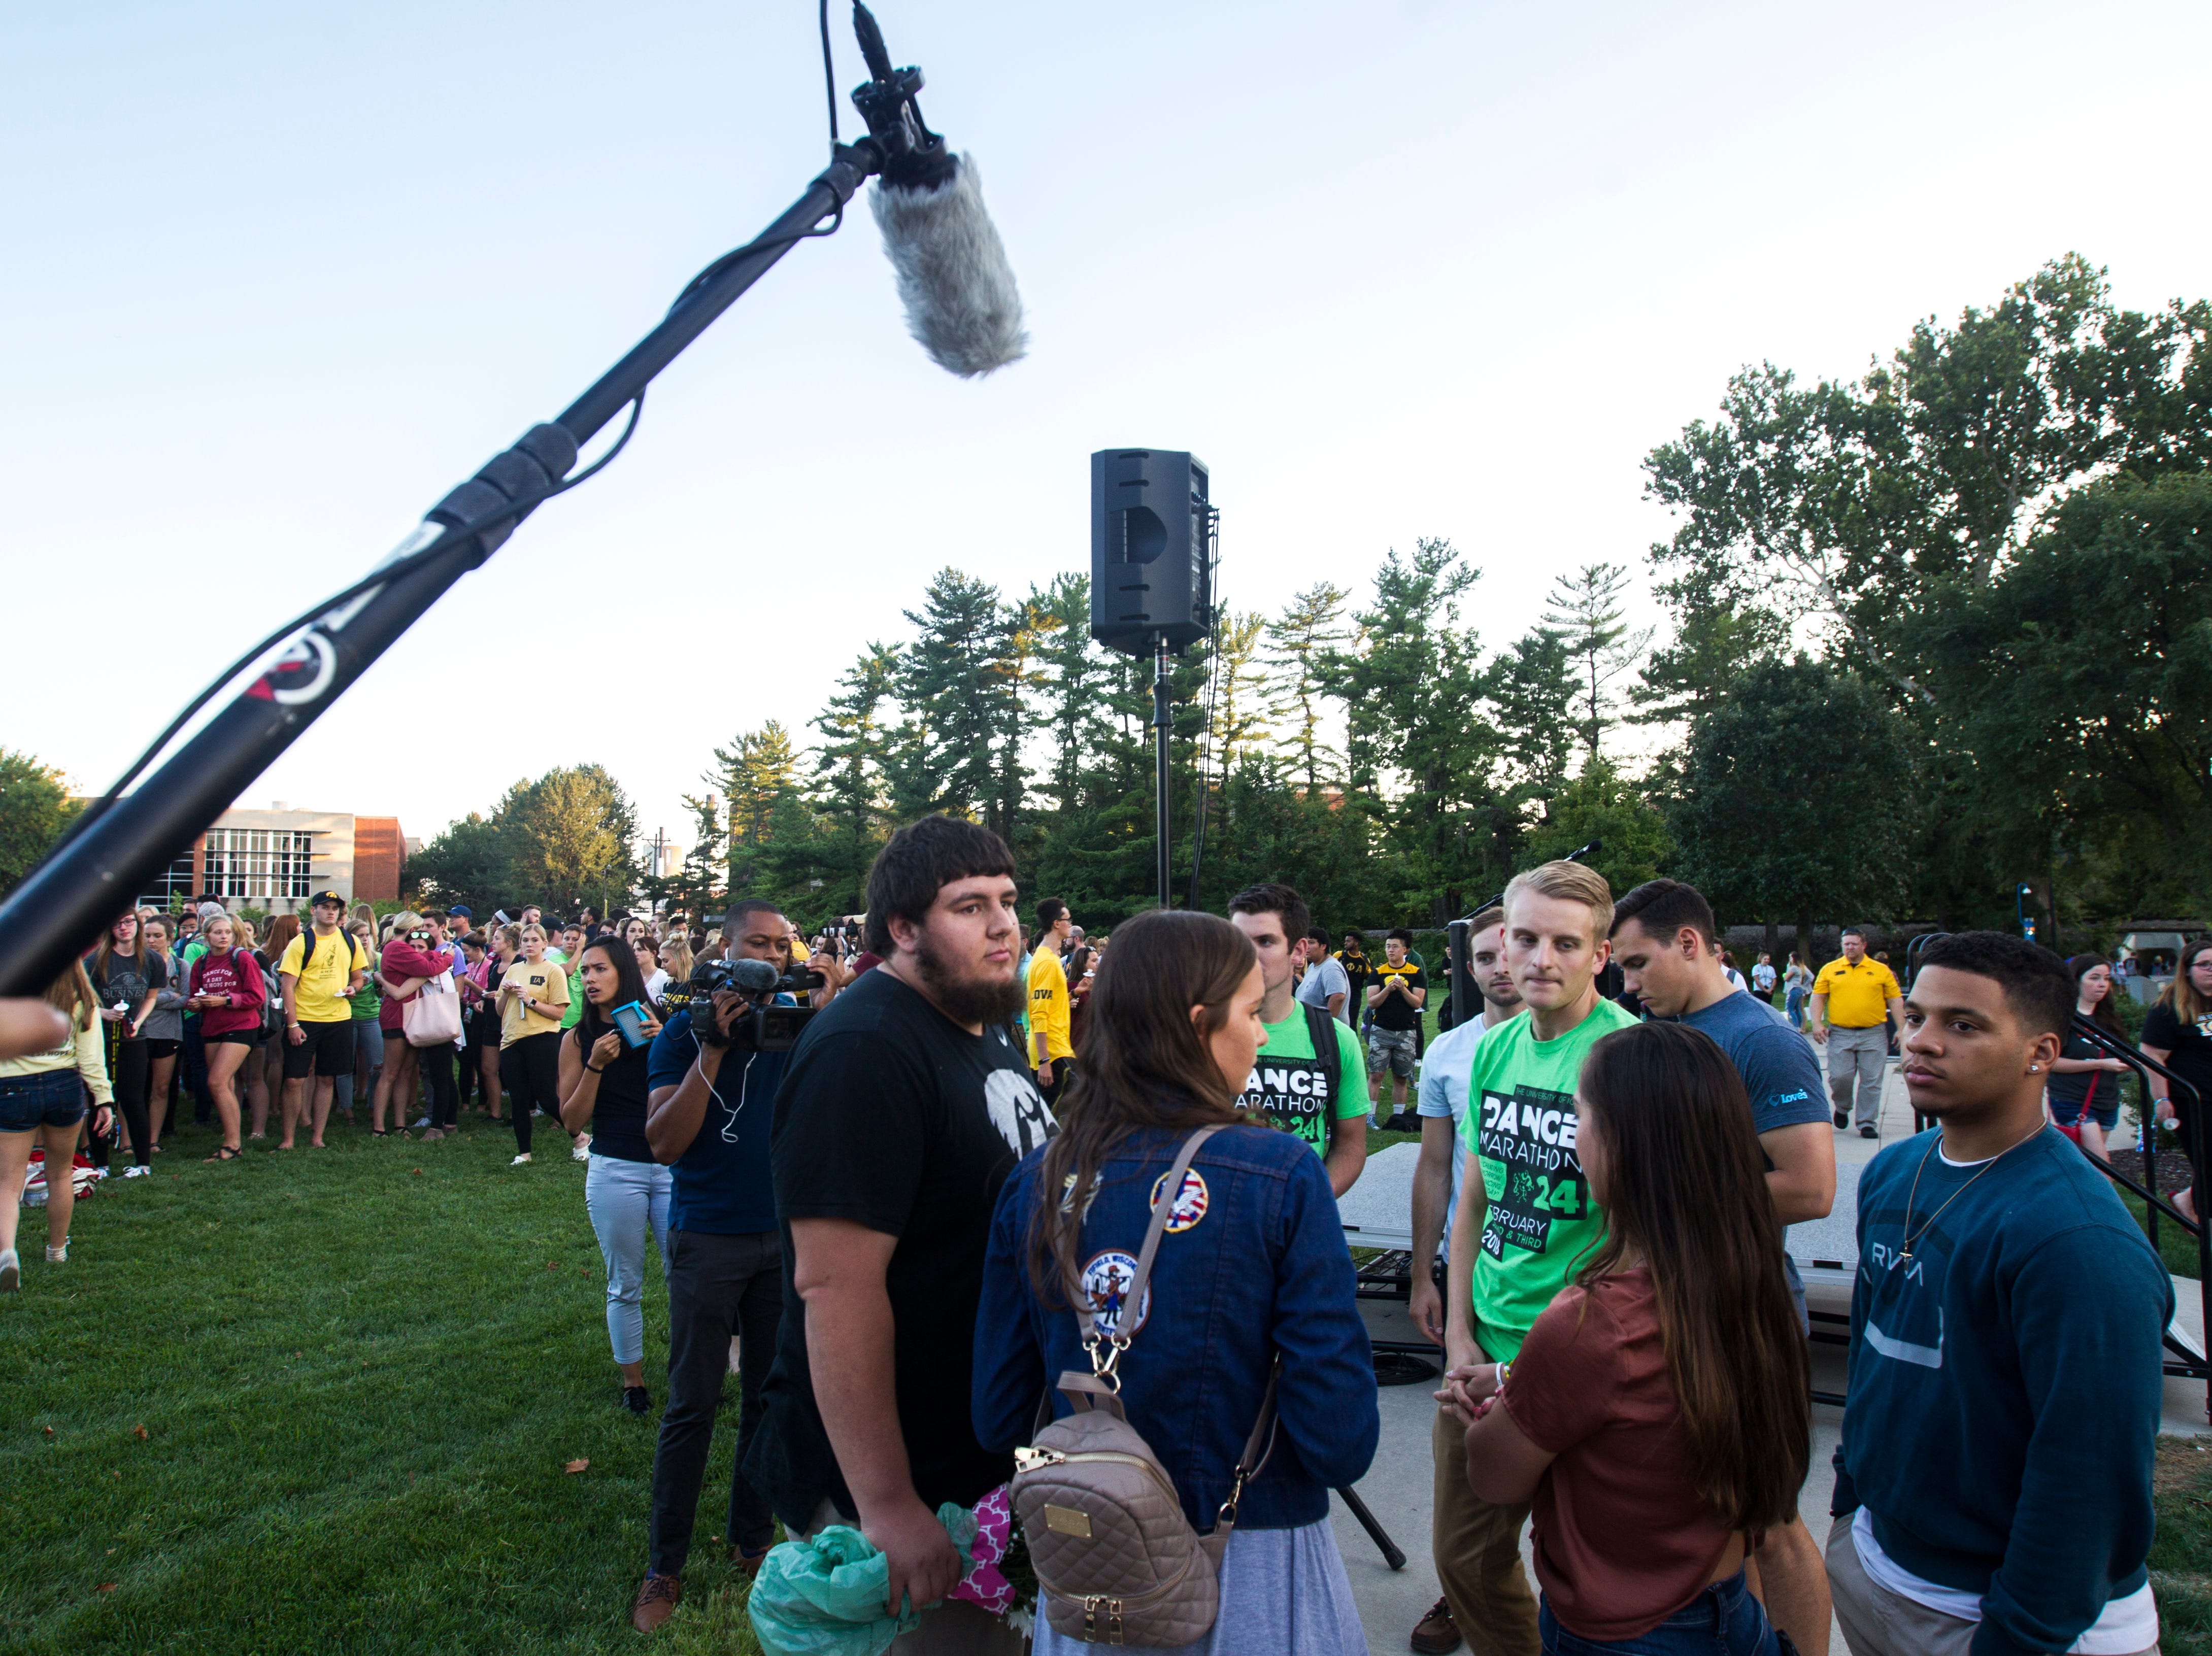 Jake Tibbetts, brother of Mollie Tibbetts, talks with supporters after a vigil for Mollie Tibbetts on Wednesday, Aug. 22, 2018, in Hubbard Park on the University of Iowa campus in Iowa City.